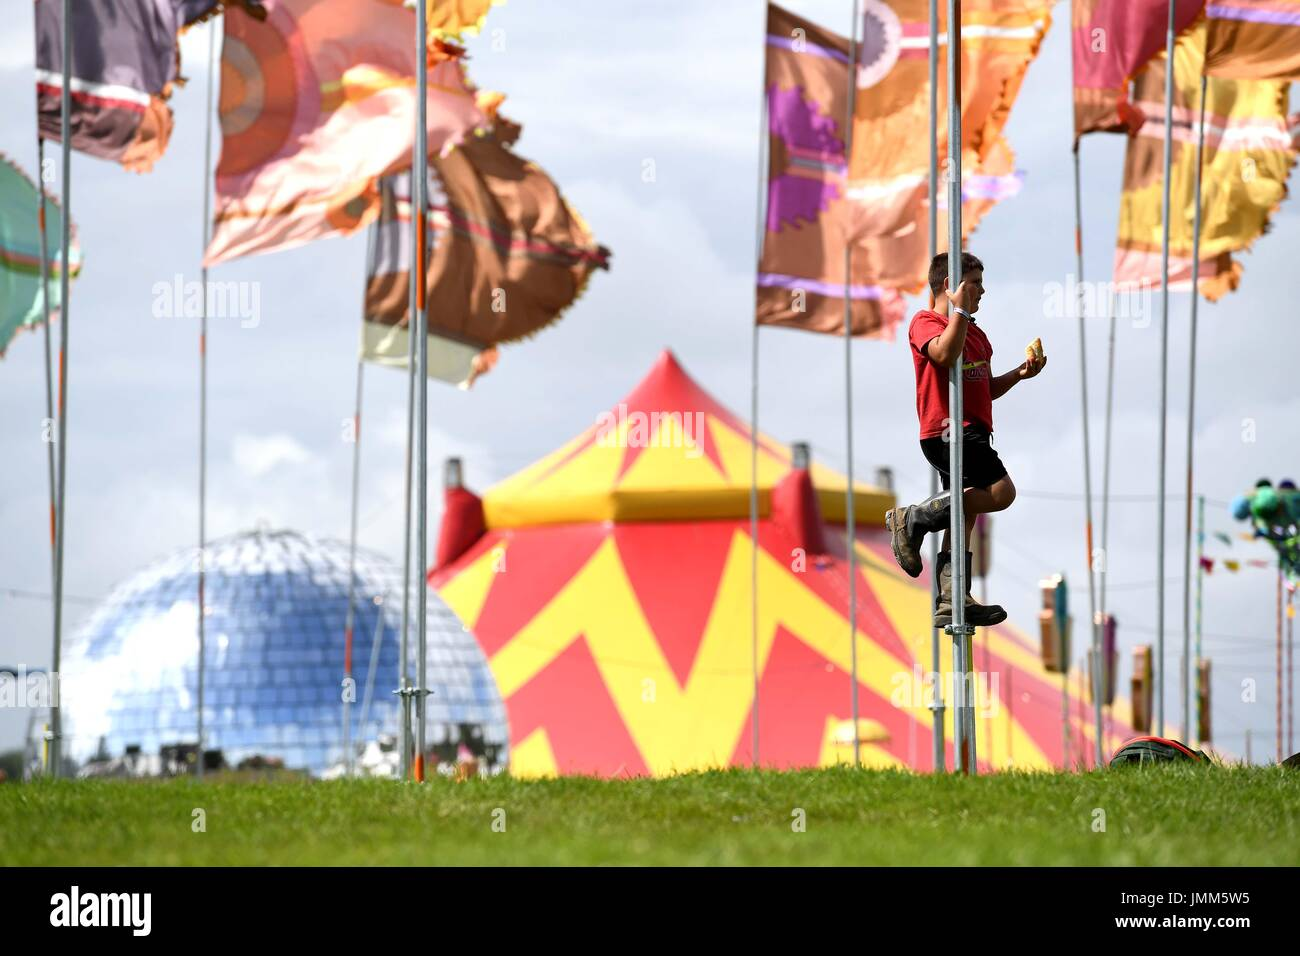 Dorset, UK. 27. Juli 2017. Camp Bestival öffnet, Dorset, UK Credit: Finnbarr Webster/Alamy Live News Stockbild